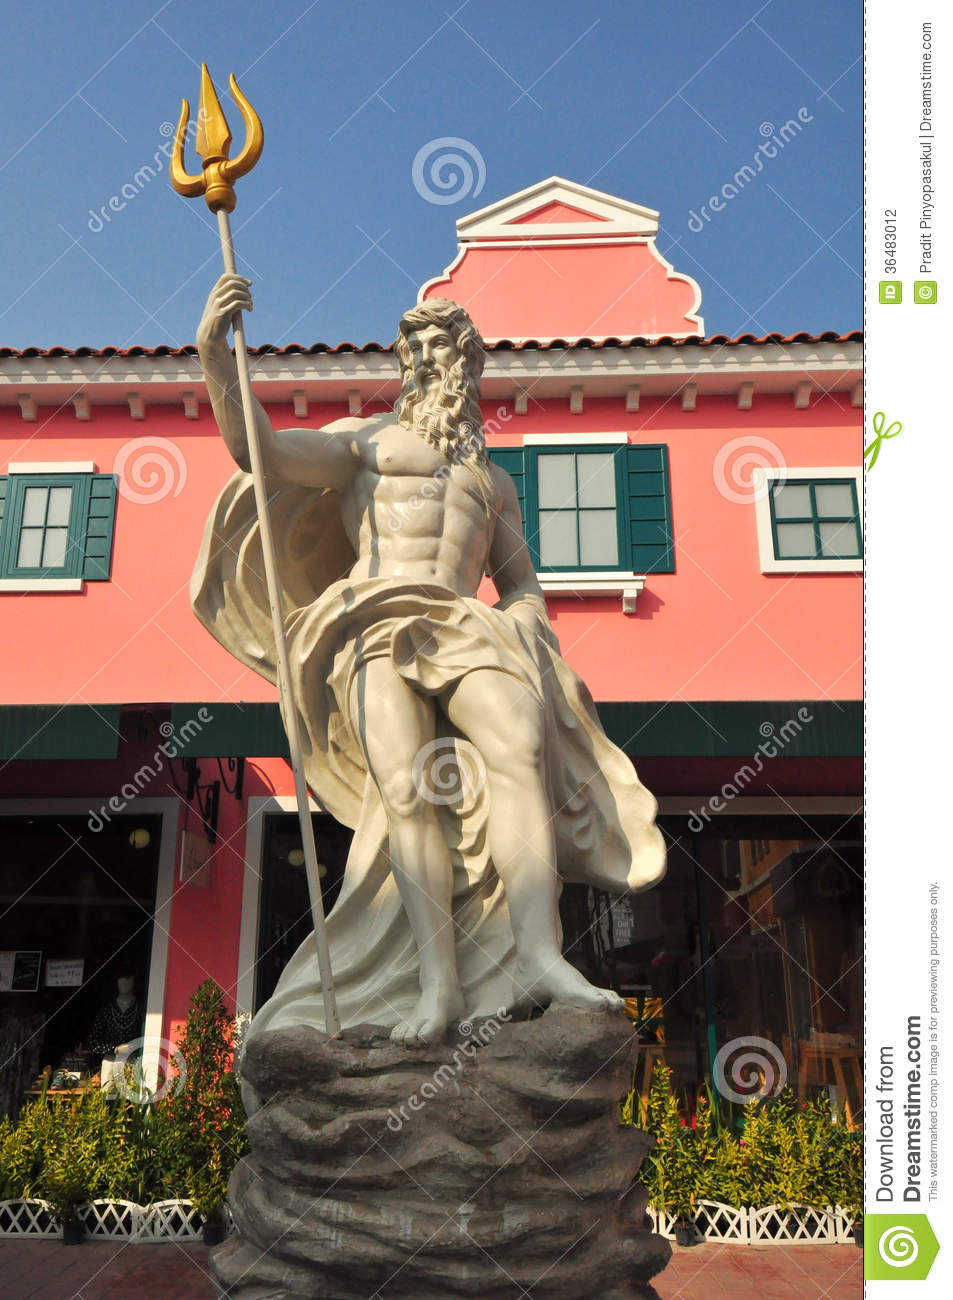 Detail of the statue of poseidon at venezia hua hin stock photography image 36483012 - Poseidon statue greece ...